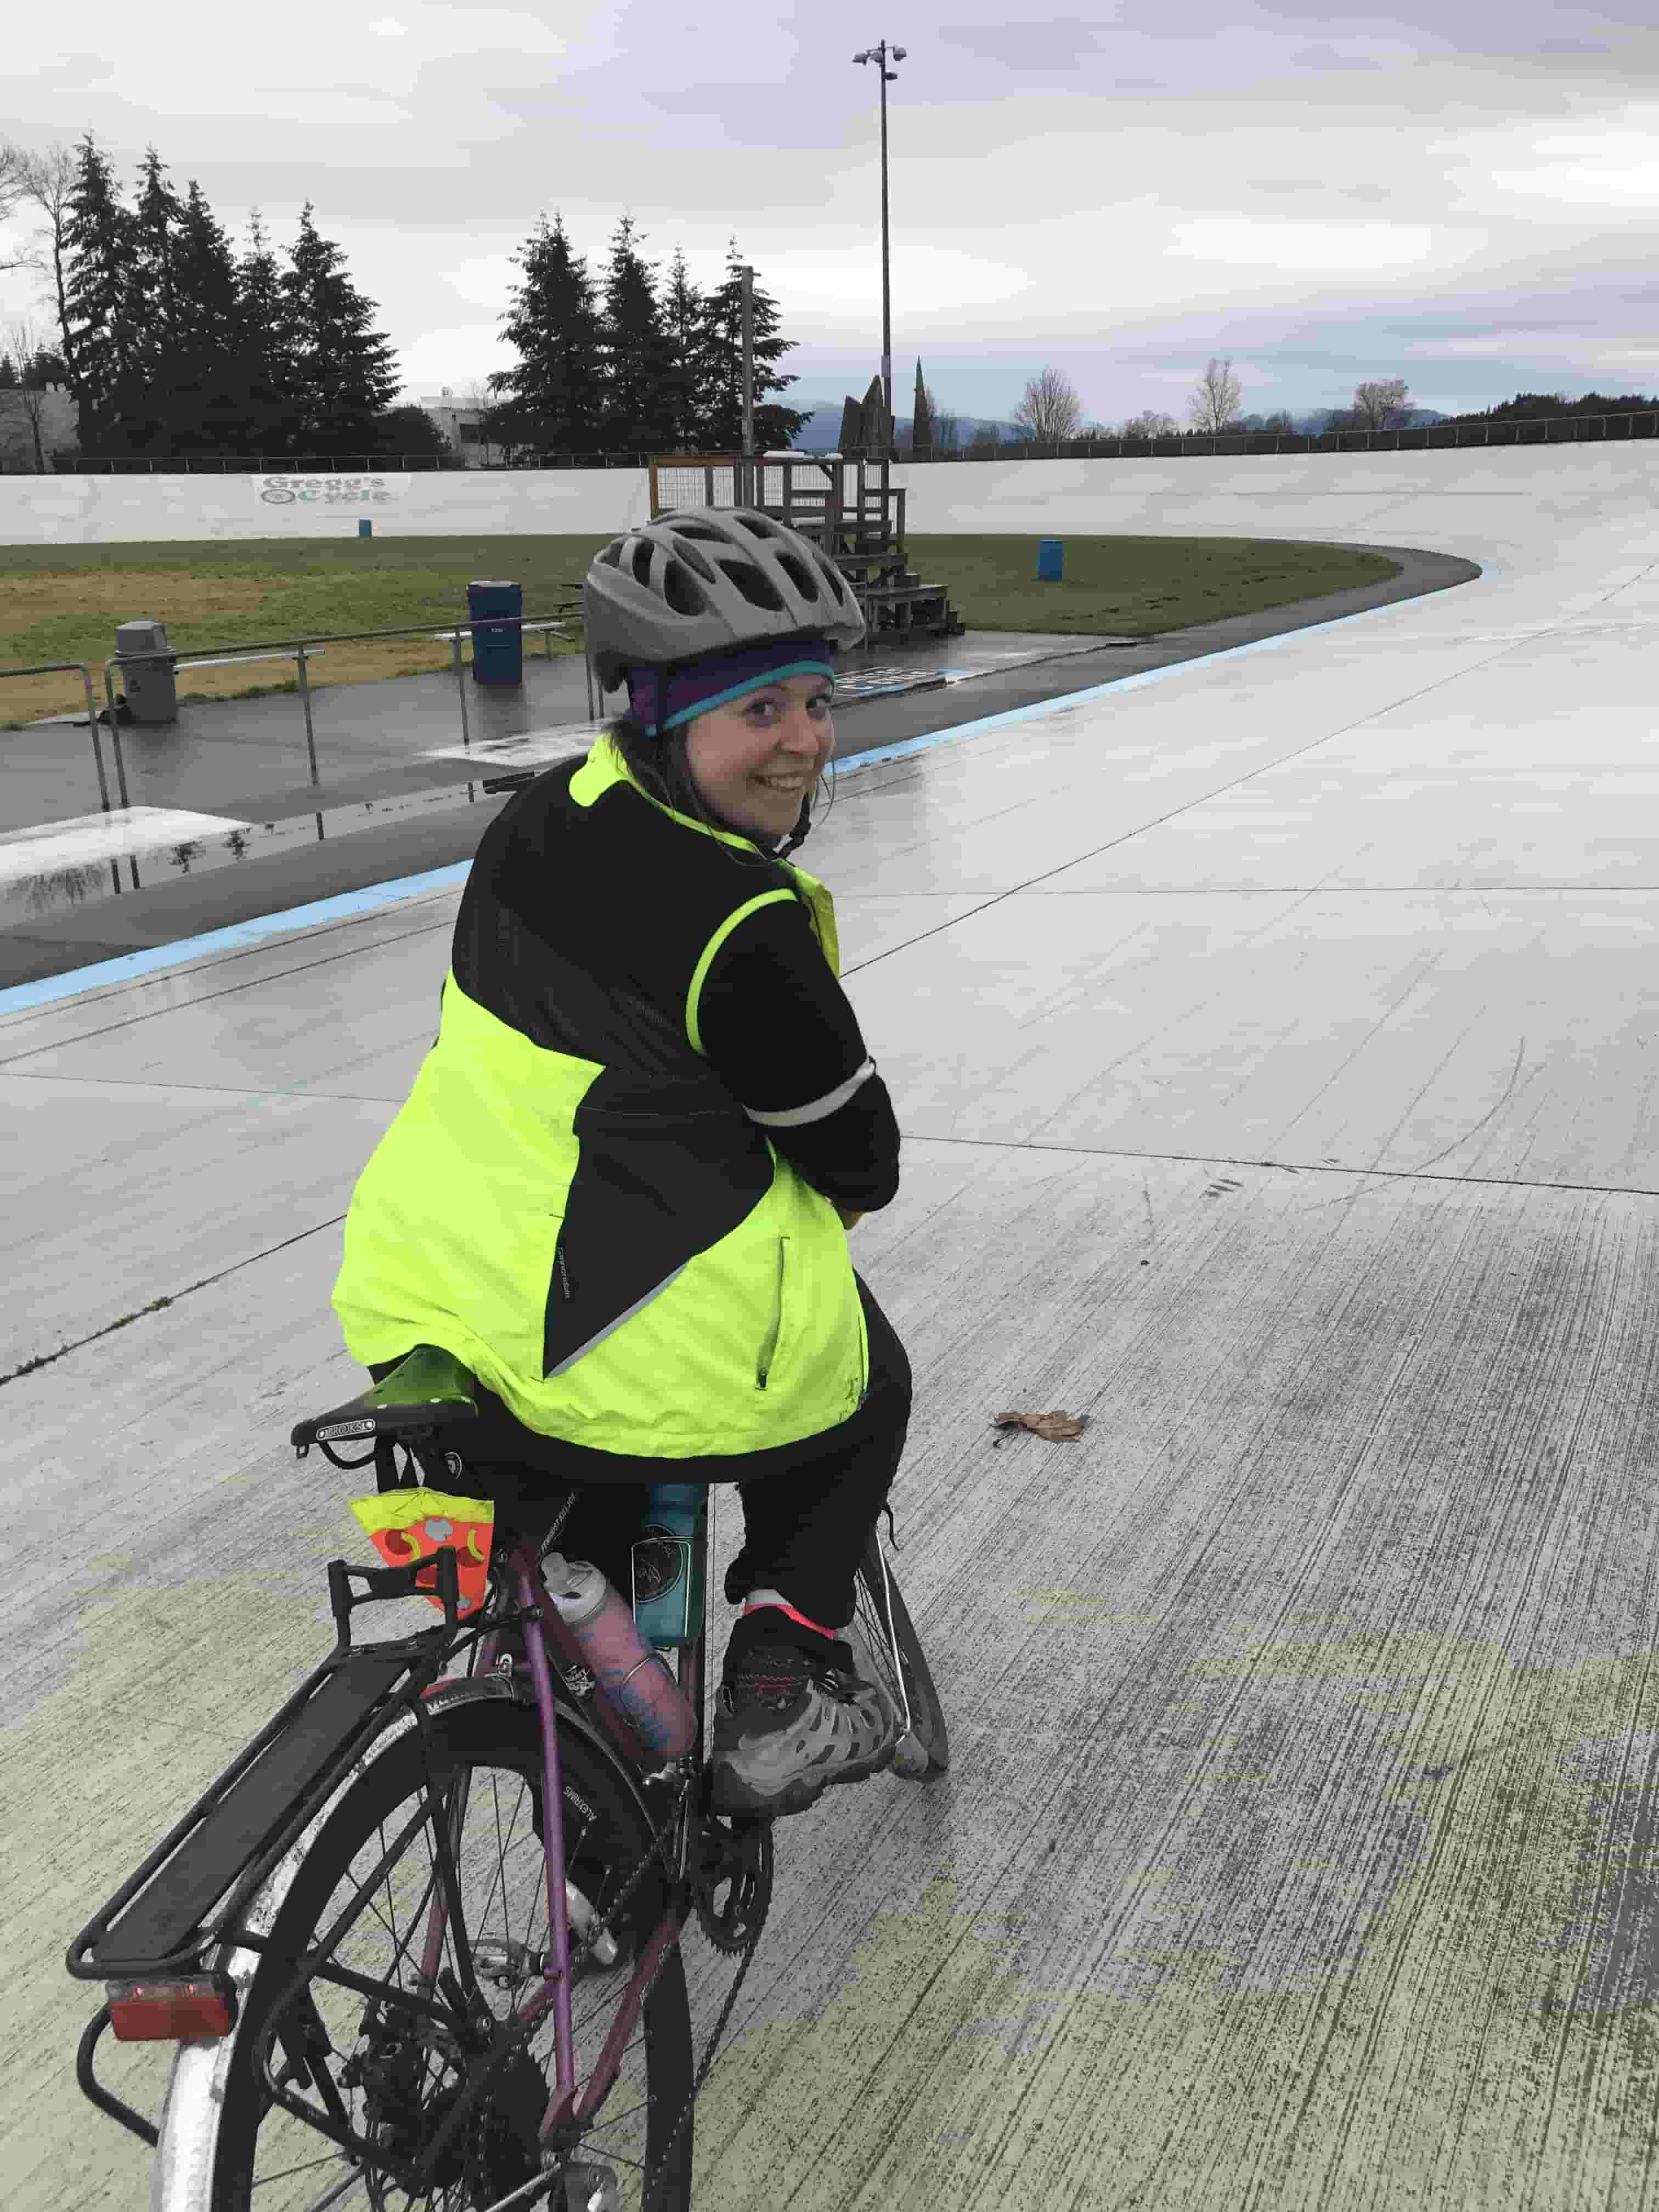 Cyclist looking back while seated on a bike in the middle of a race track wearing biking gear on a rainy day